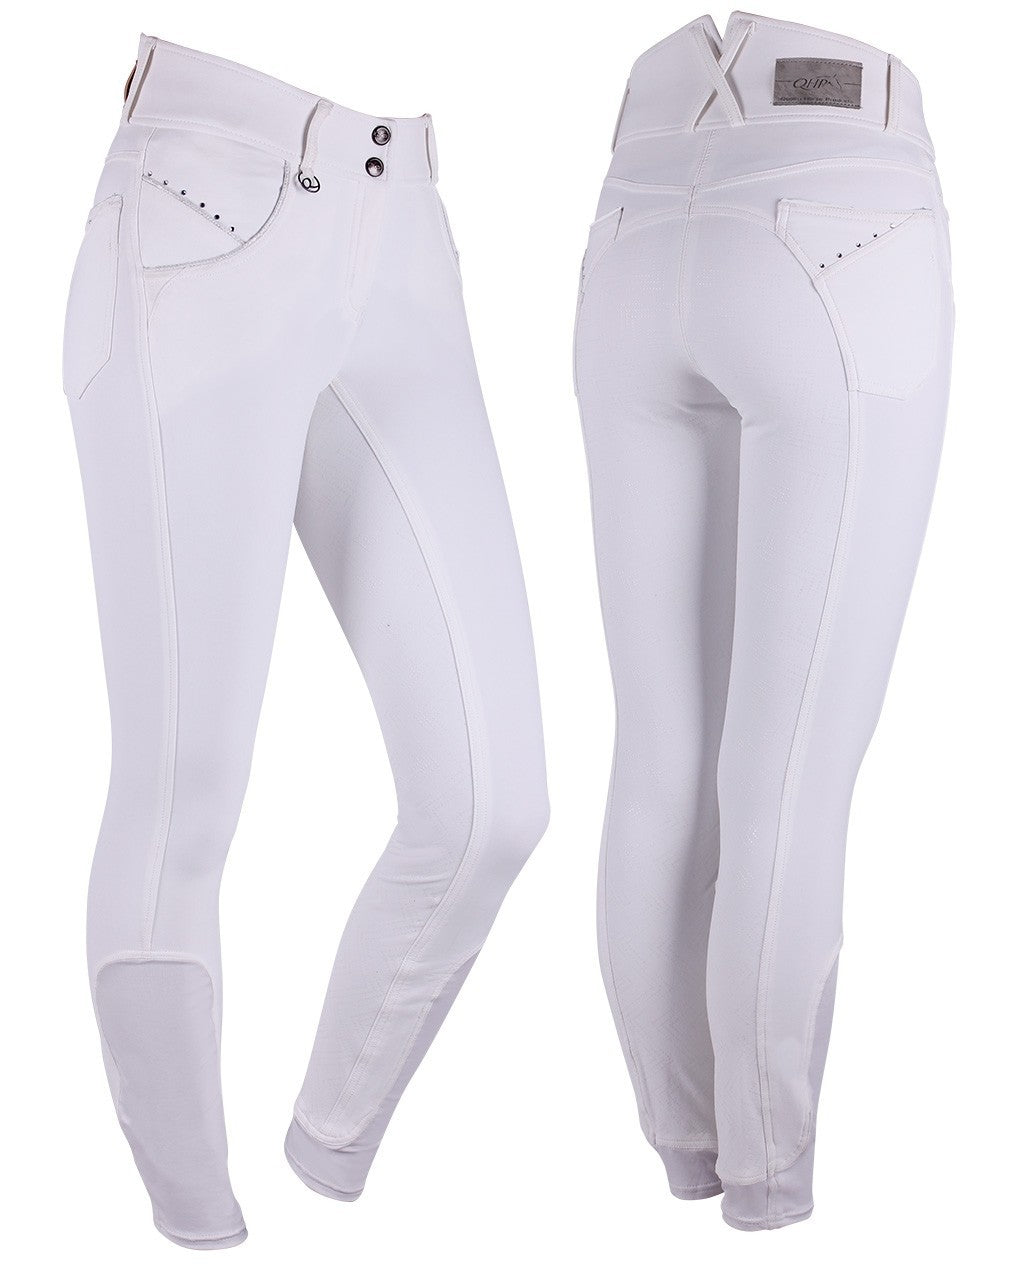 Competition Breeches Noa Anti-Slip Full Seat - White